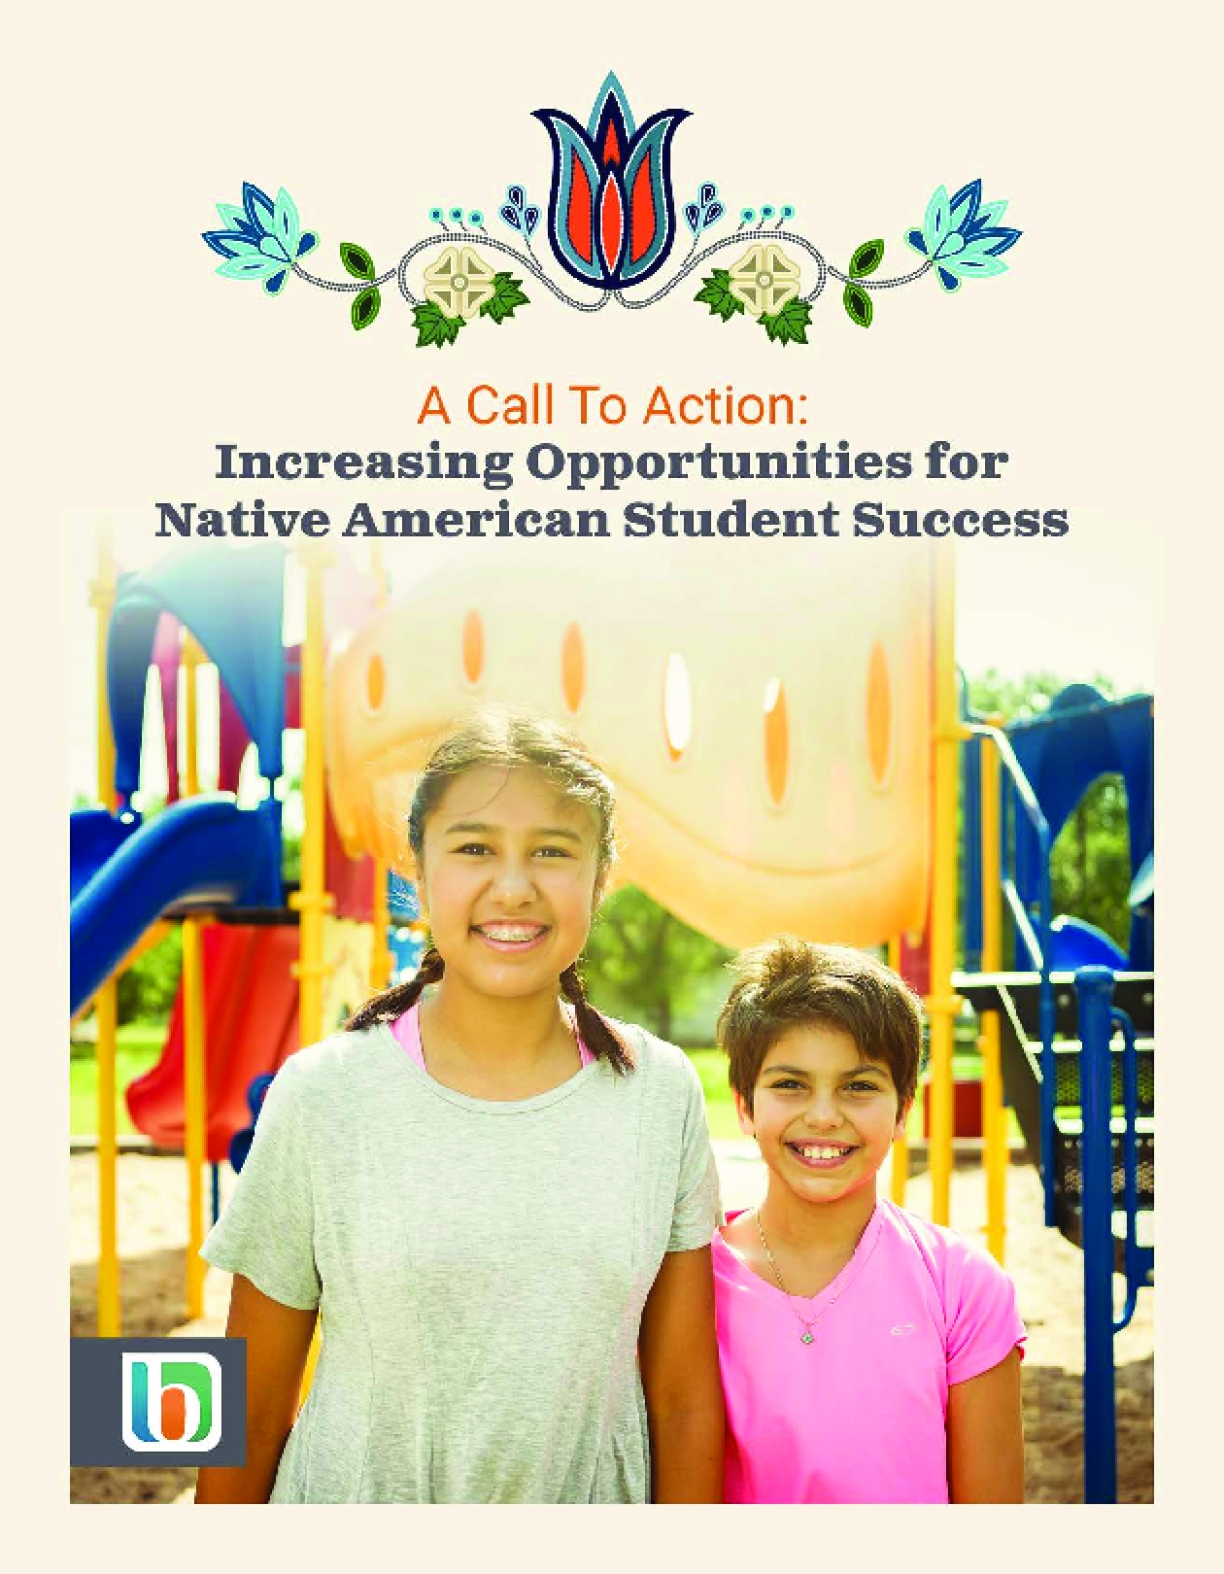 A Call To Action: Increasing Opportunities for Native American Student Success